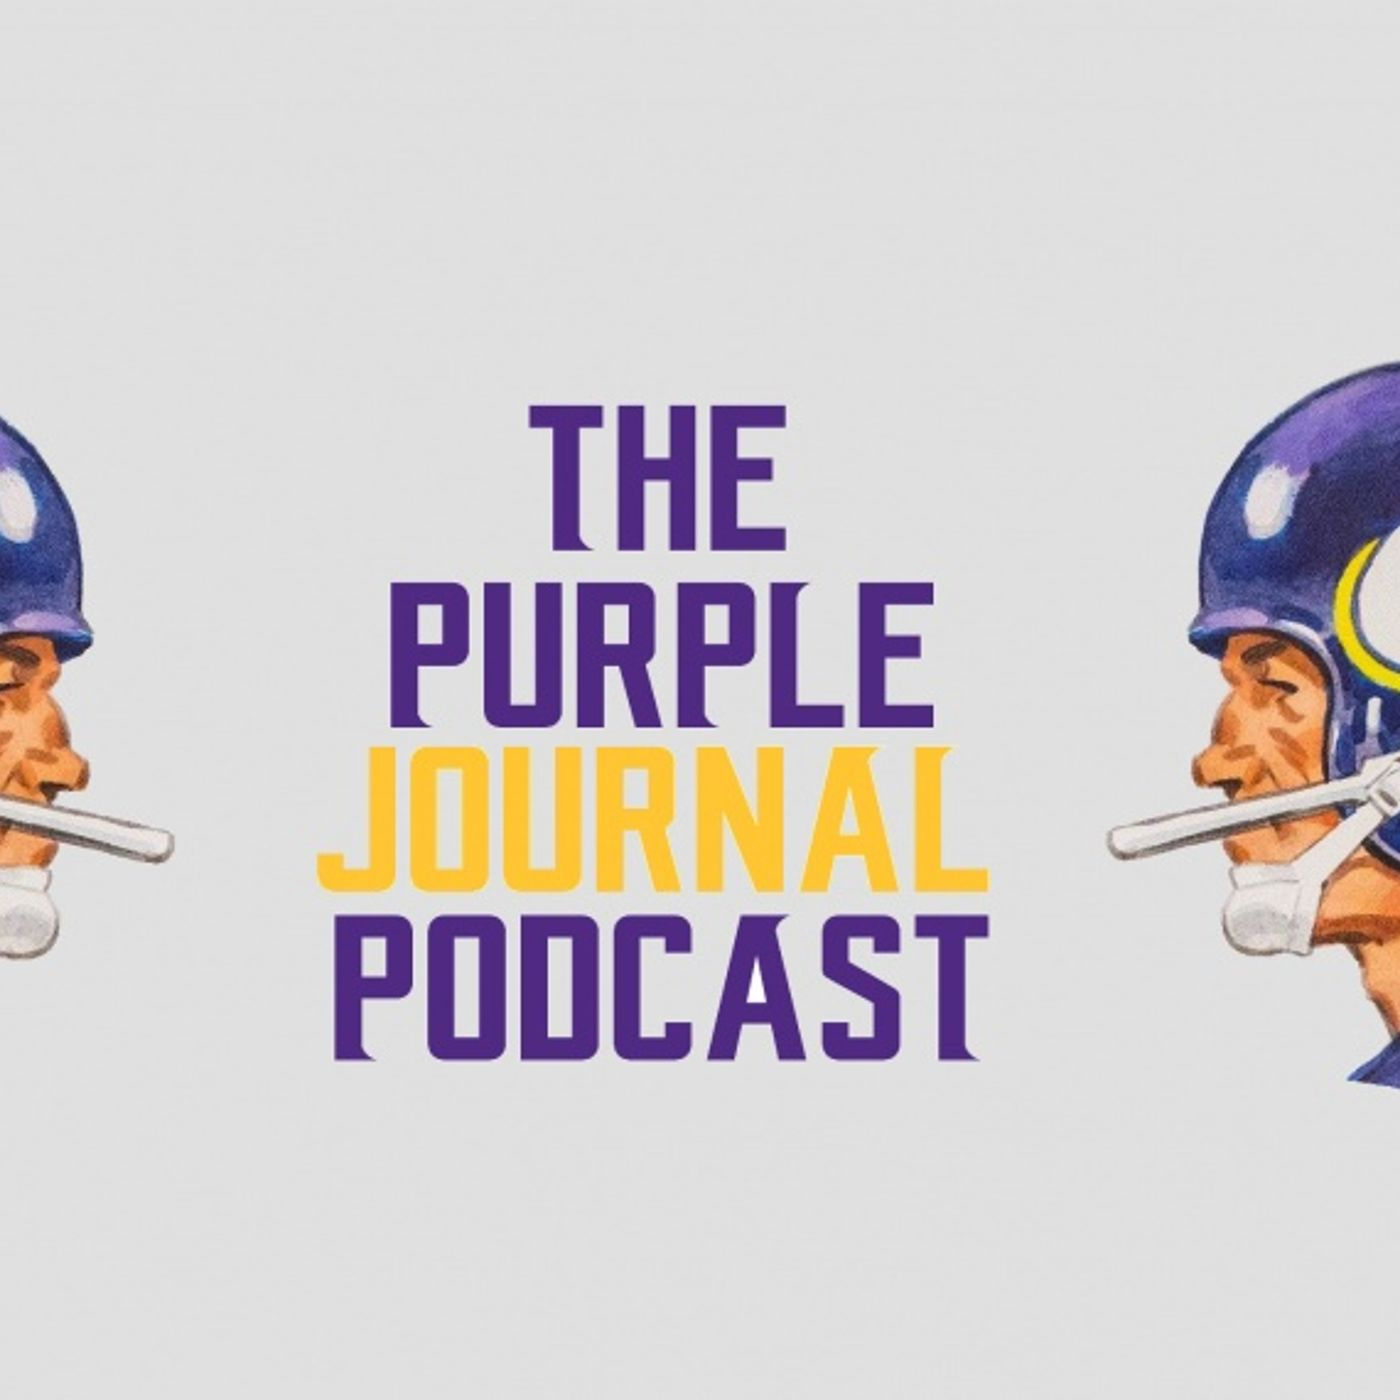 The purpleJOURNAL Podcast - Eagles/Cardinals Coverage